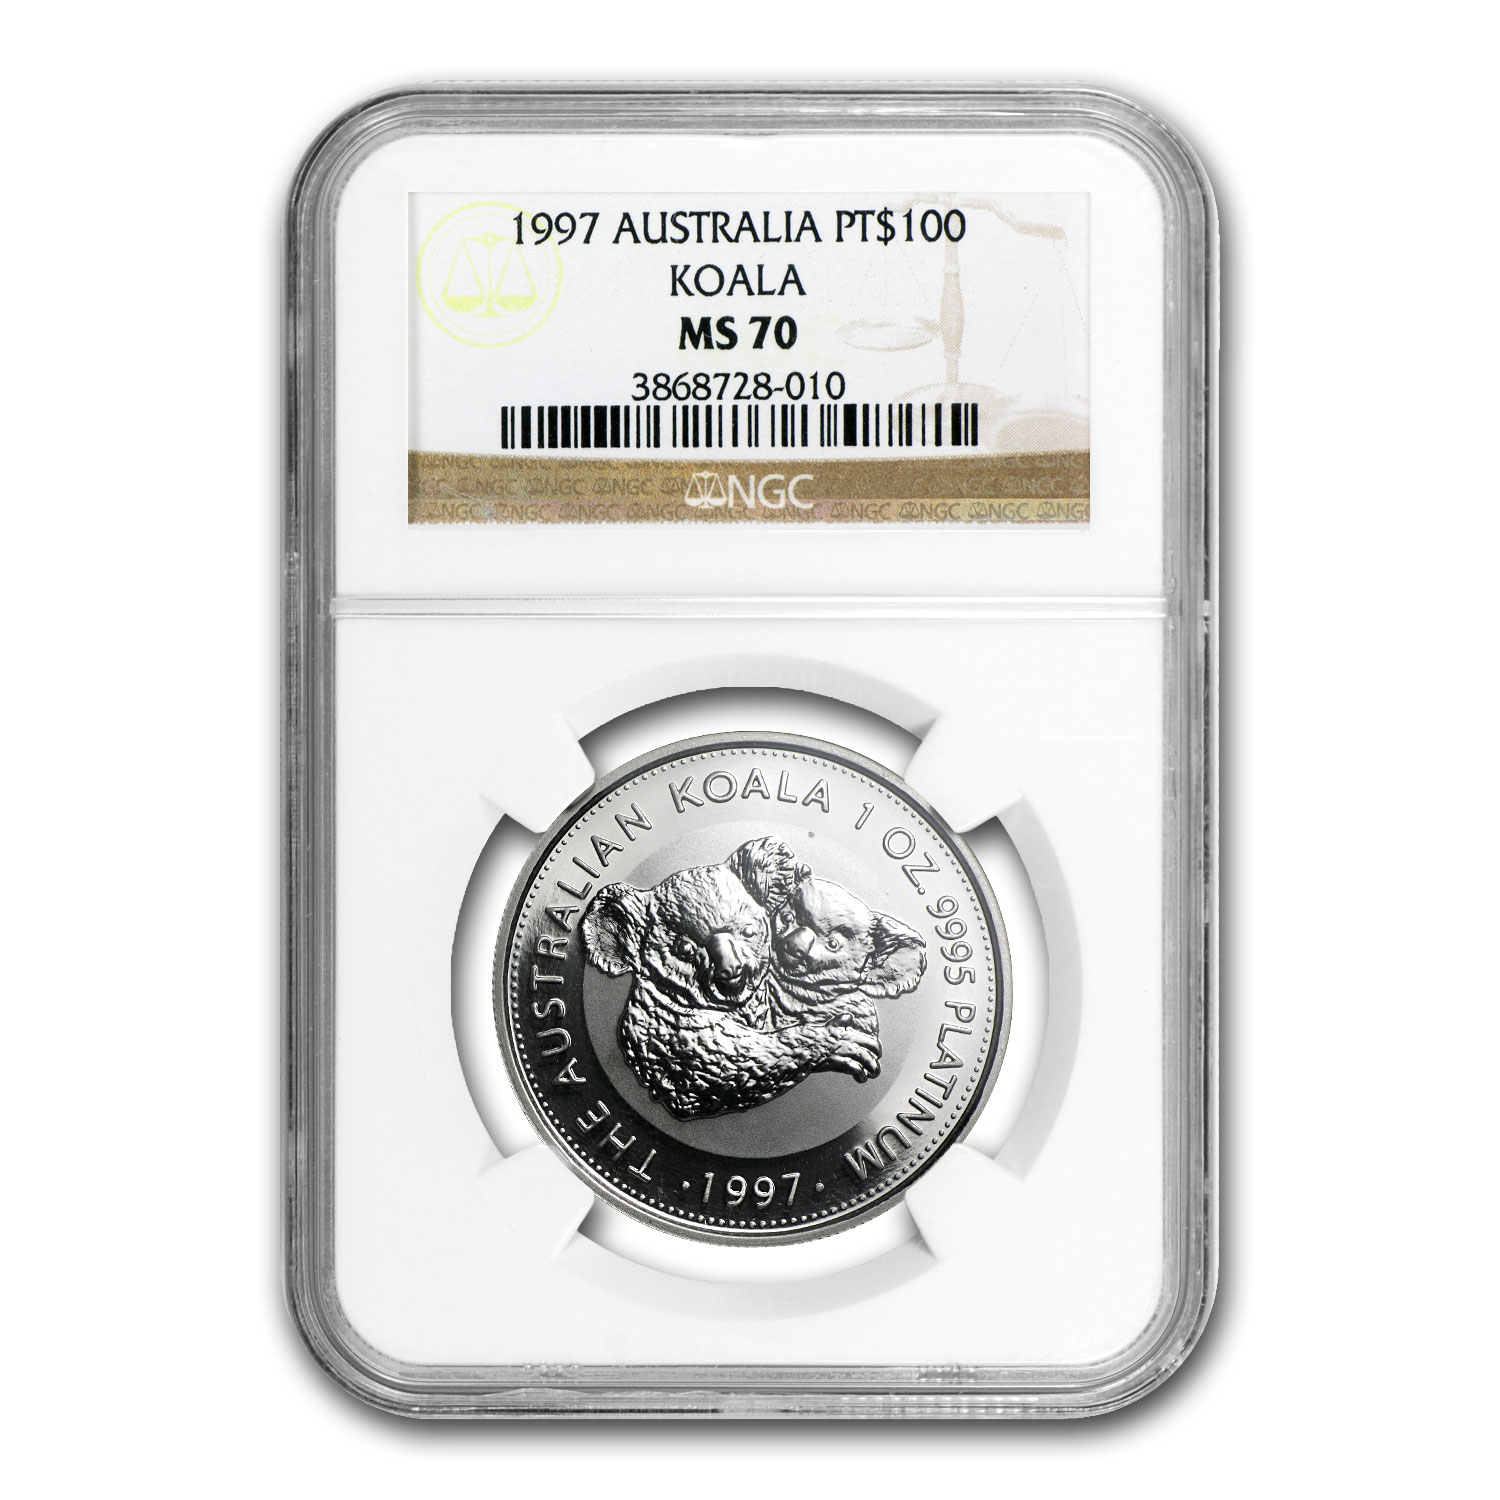 1997 1 oz Australian Platinum Koala MS-70 NGC (Registry Set)